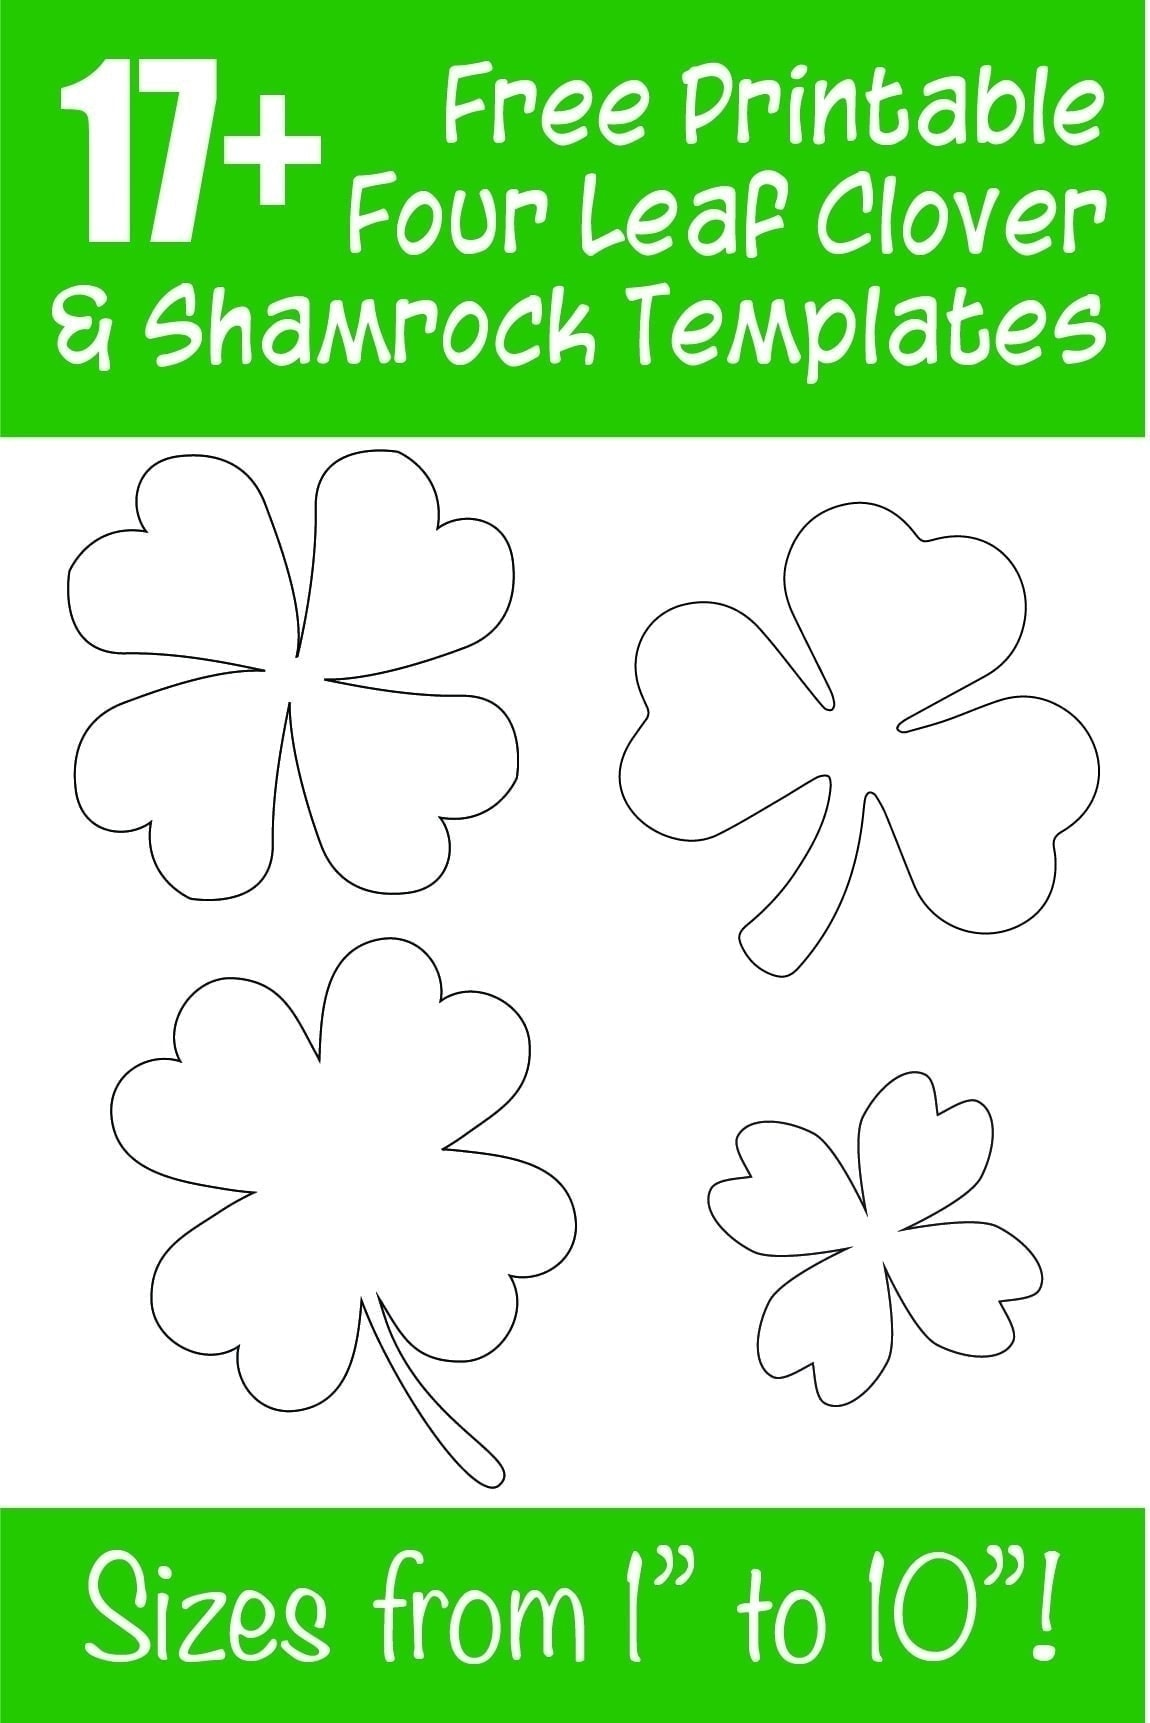 17+ Free Printable Four Leaf Clover & Shamrock Templates ...